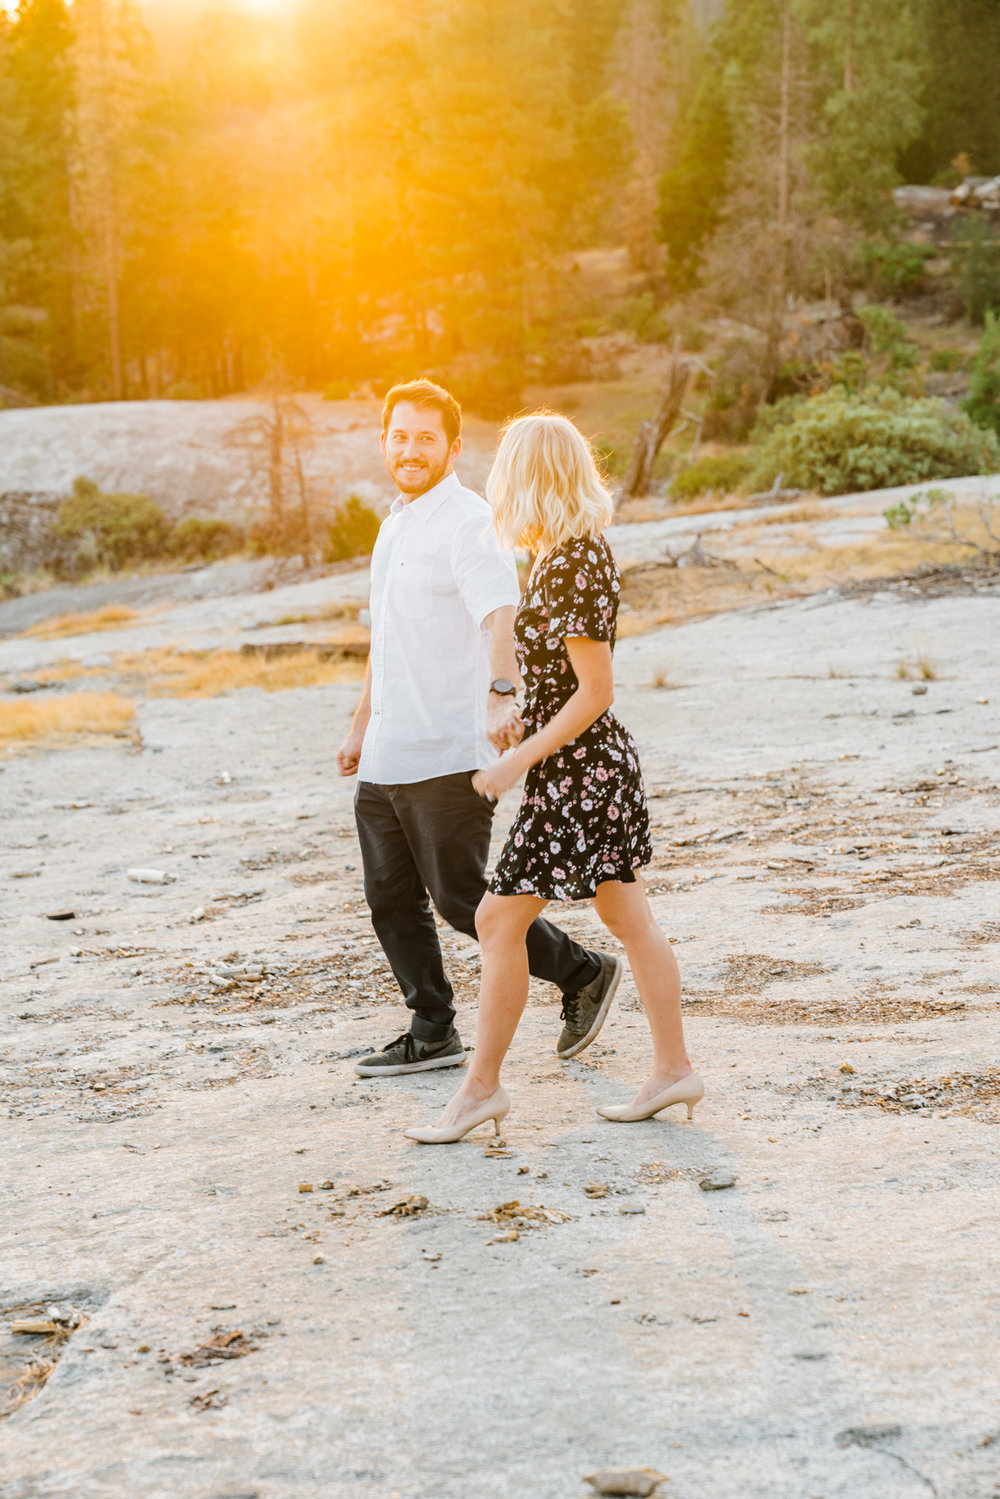 Shaver Lake Engagement Portraits - Meghan and Clay -  by Bessie Young Photography 2018 A7R2-150.jpg